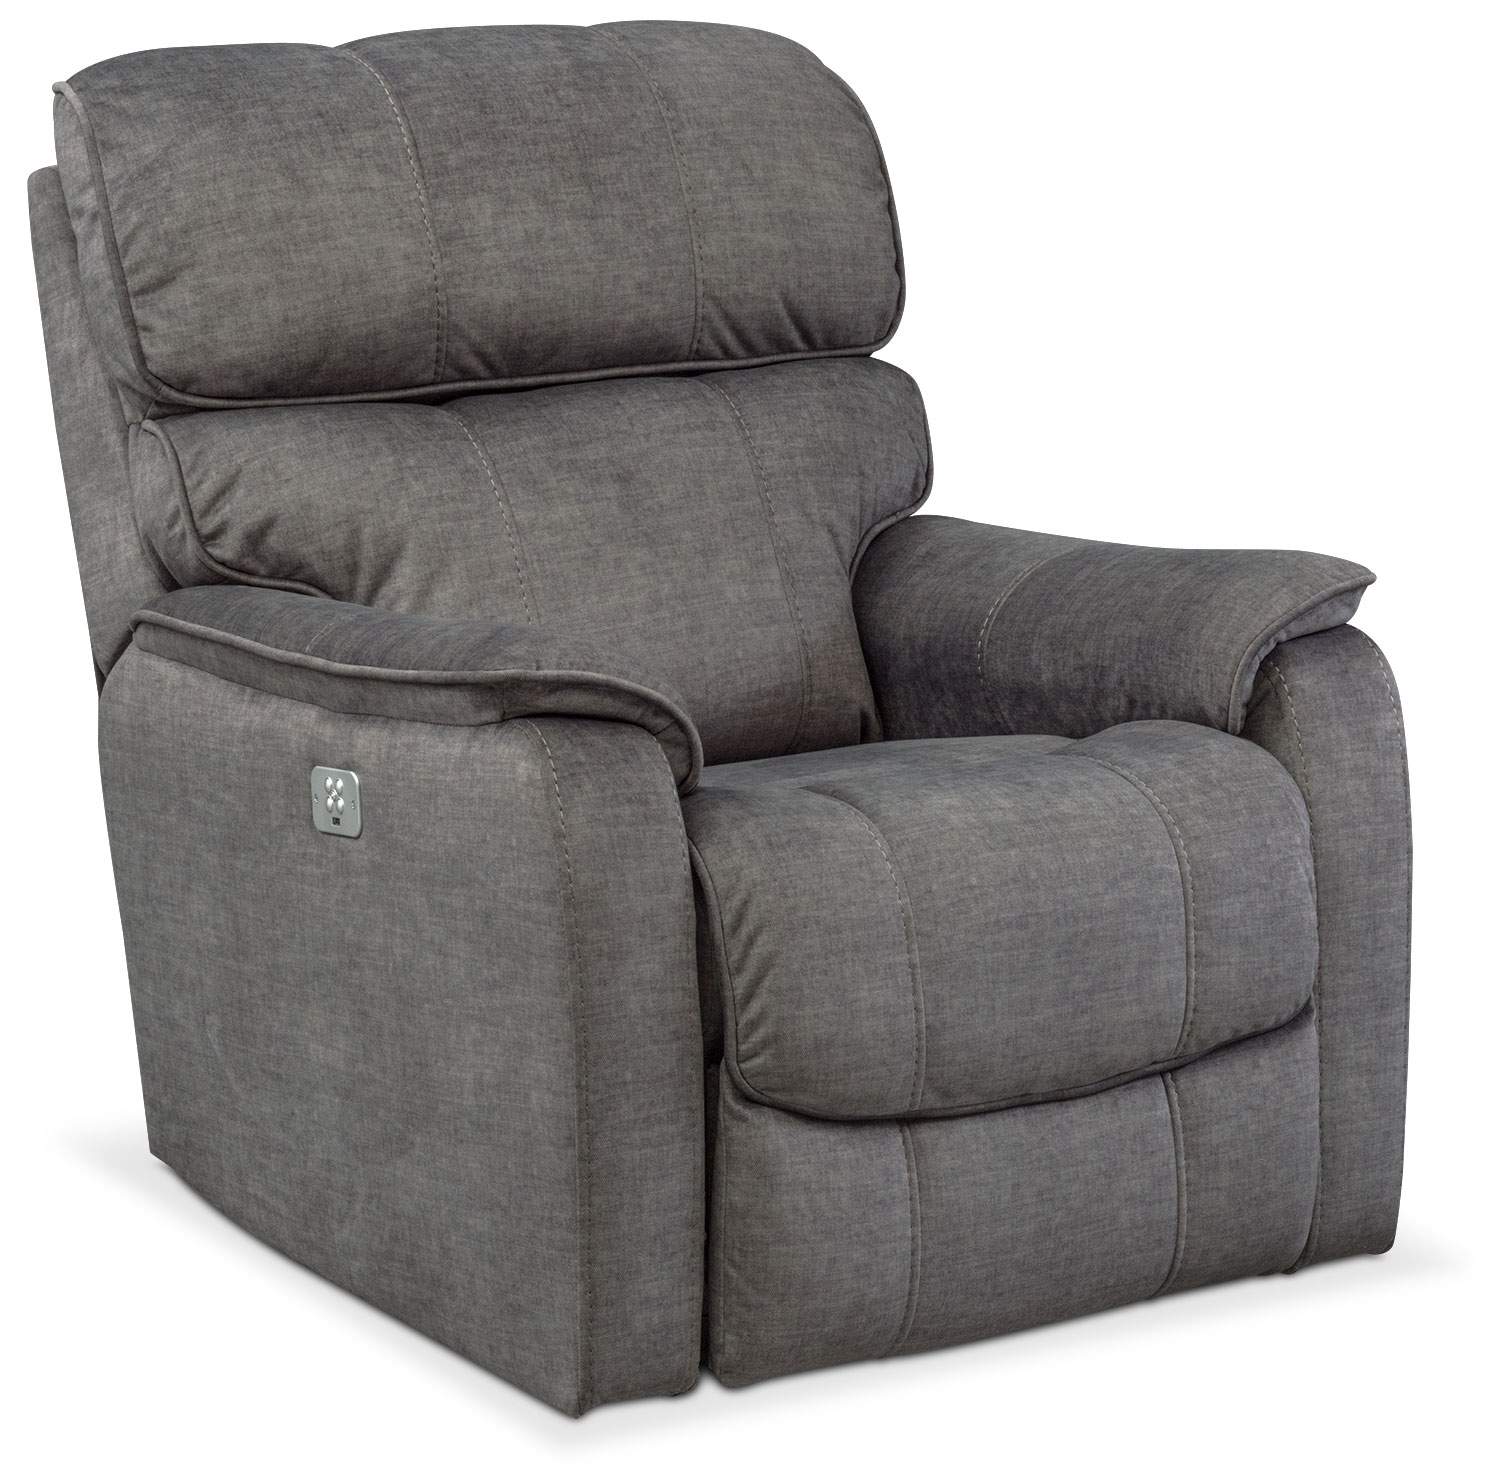 Recliners & Rockers | Value City Furniture | Value City Furniture ...